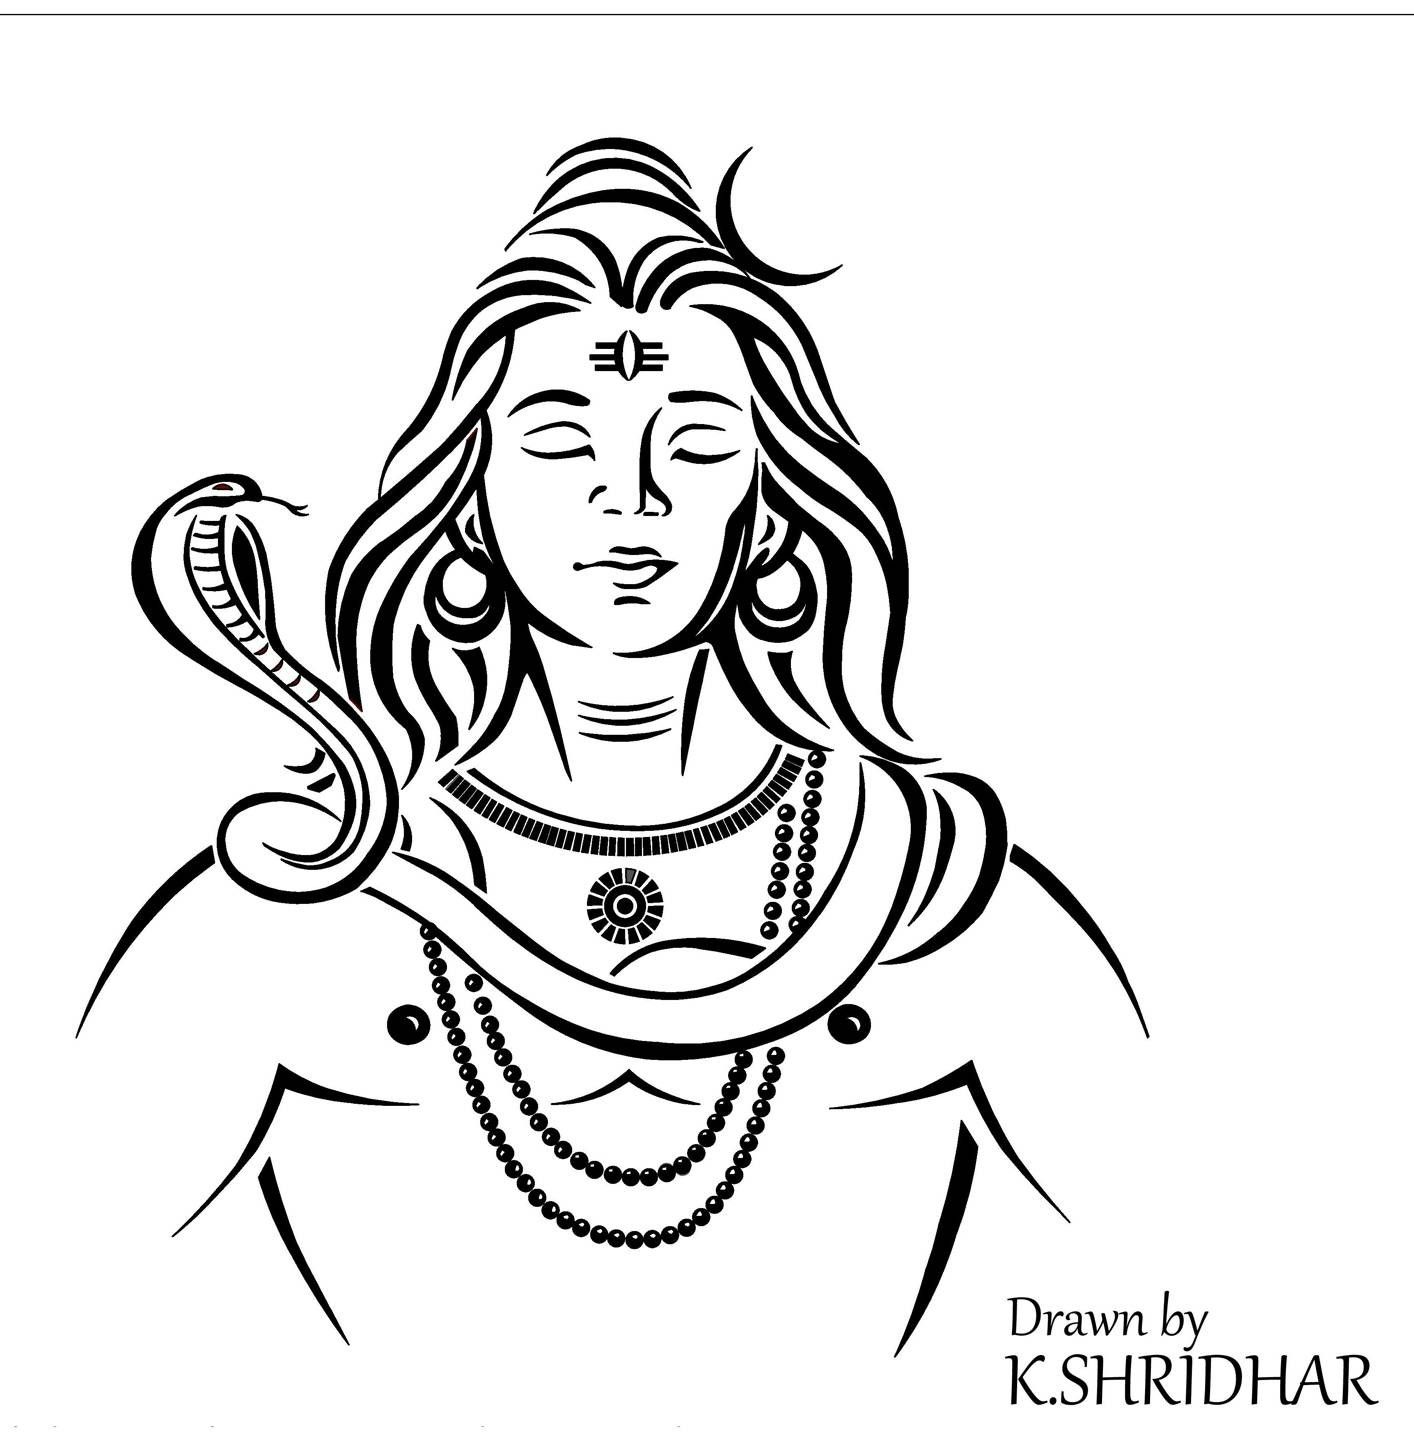 how to draw lord shiva face pencil drawing murugan drawing easy face lord how to shiva draw